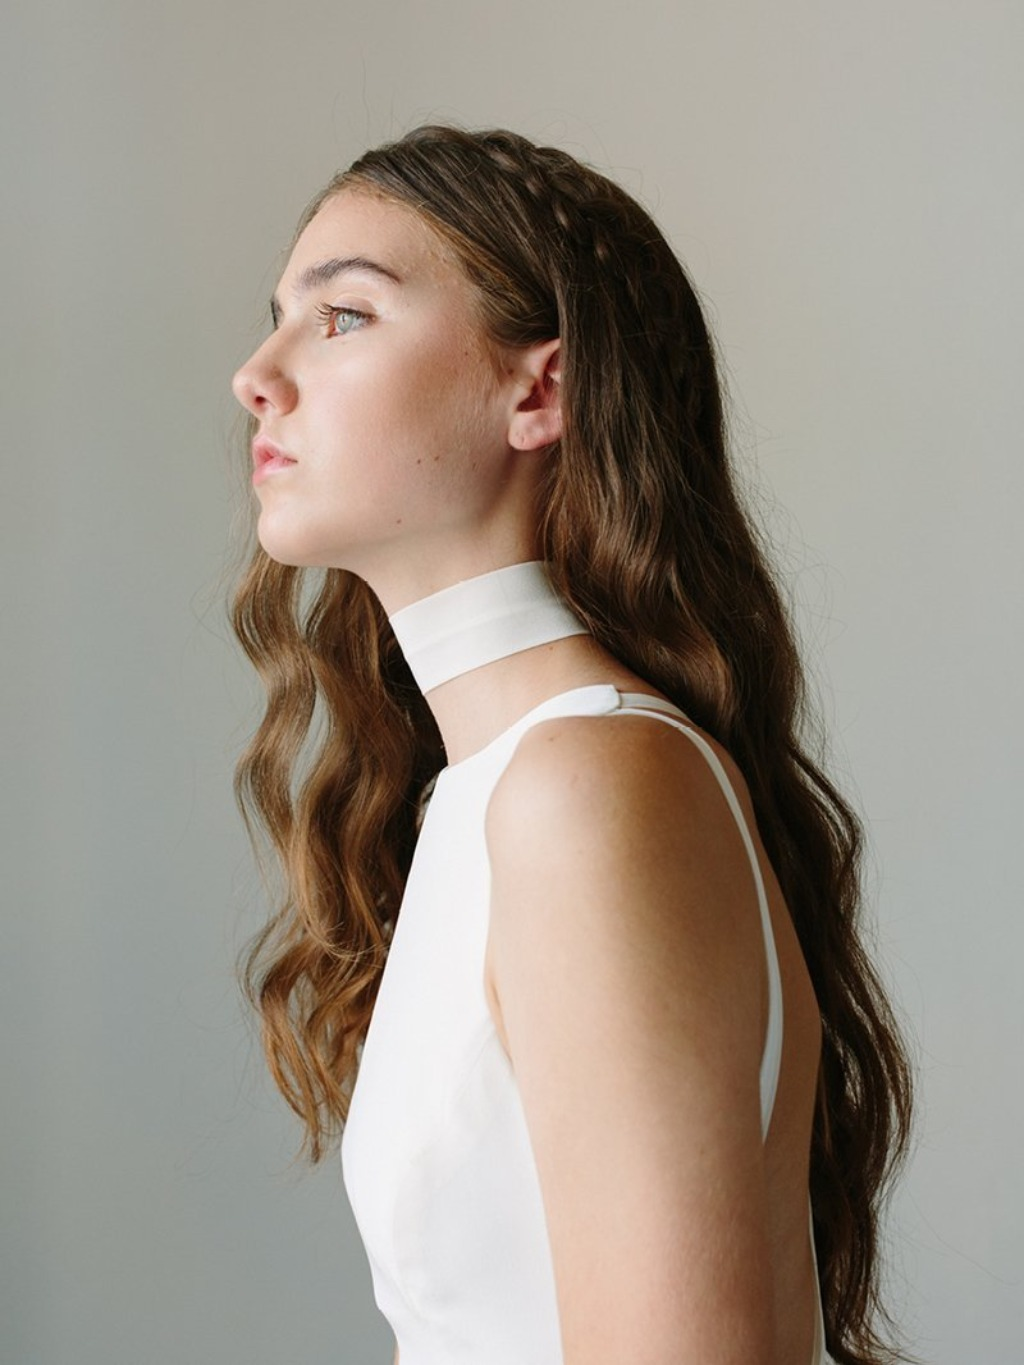 An effortlessly chic look: a pared down silk crepe choker.